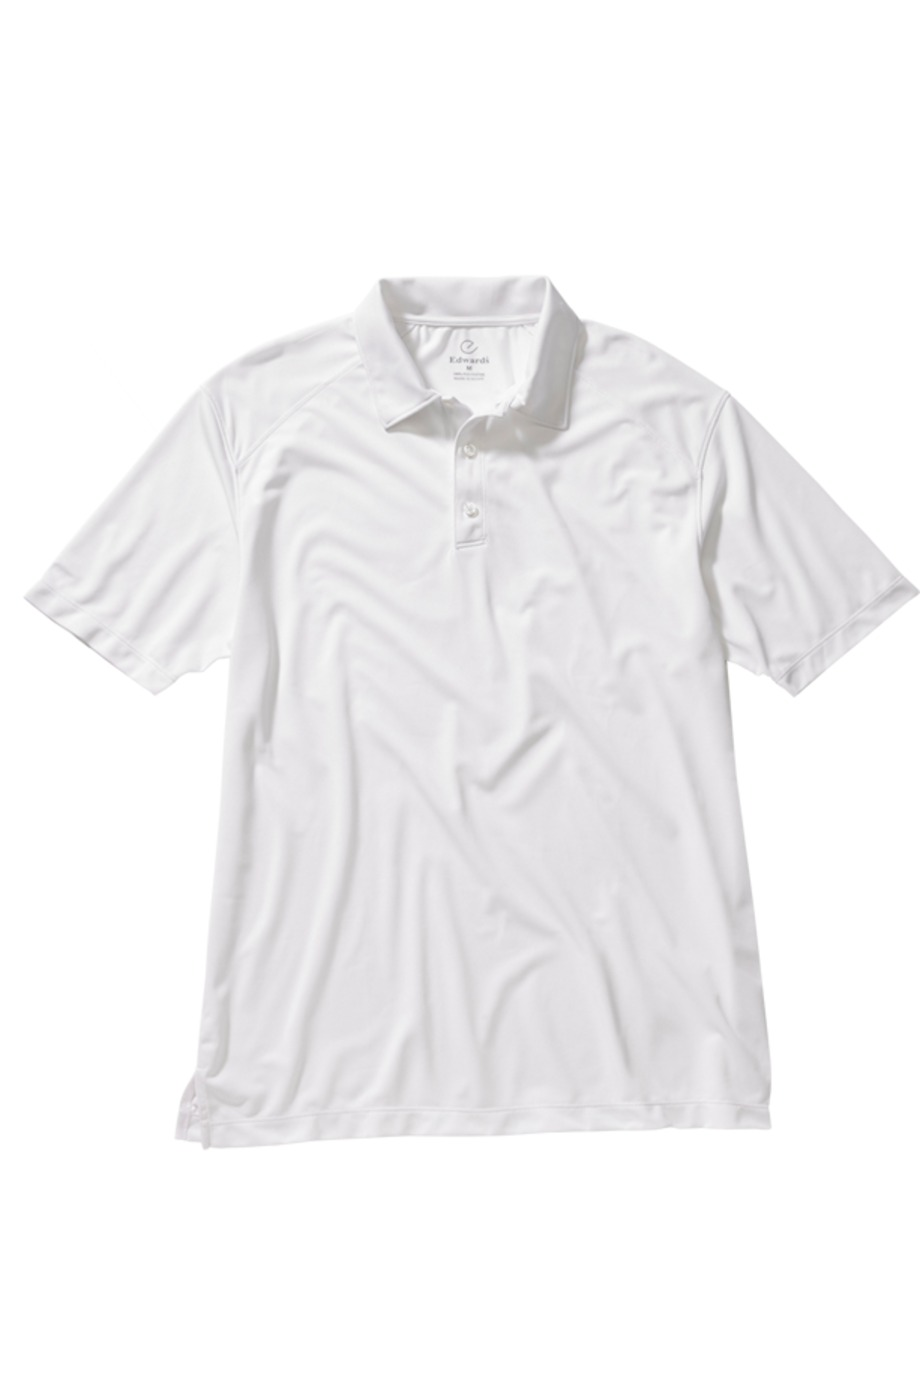 Edwards Garment 1516 - Men's Micro-Pique Polo With Self-...